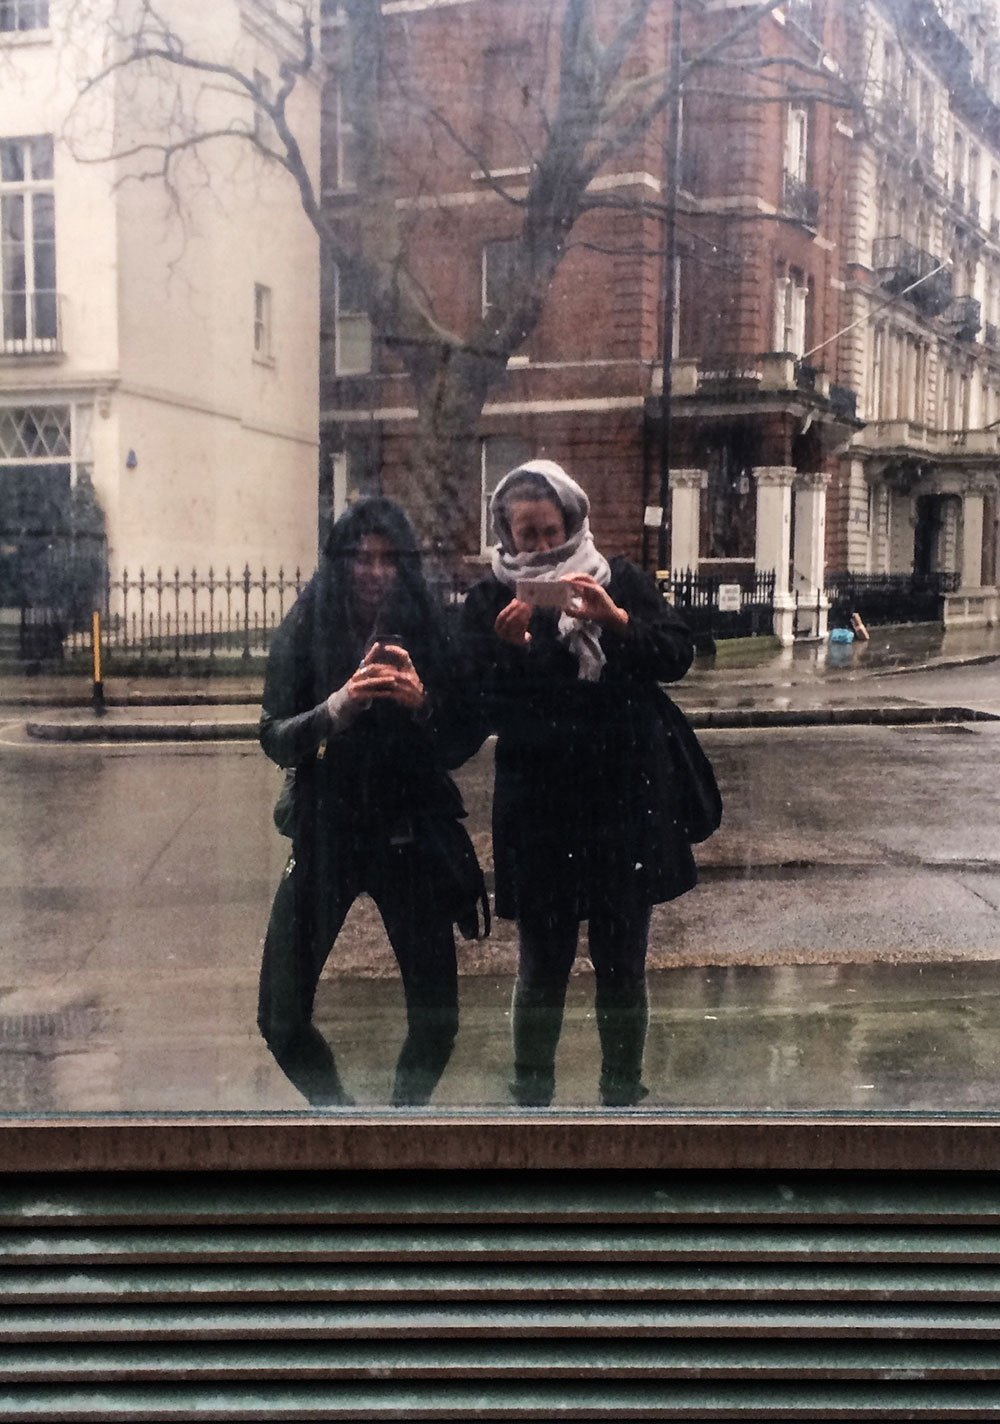 Coming to London, Baby?! 9 things I learned about the Old Smoke & a beautiful city even in the rain.